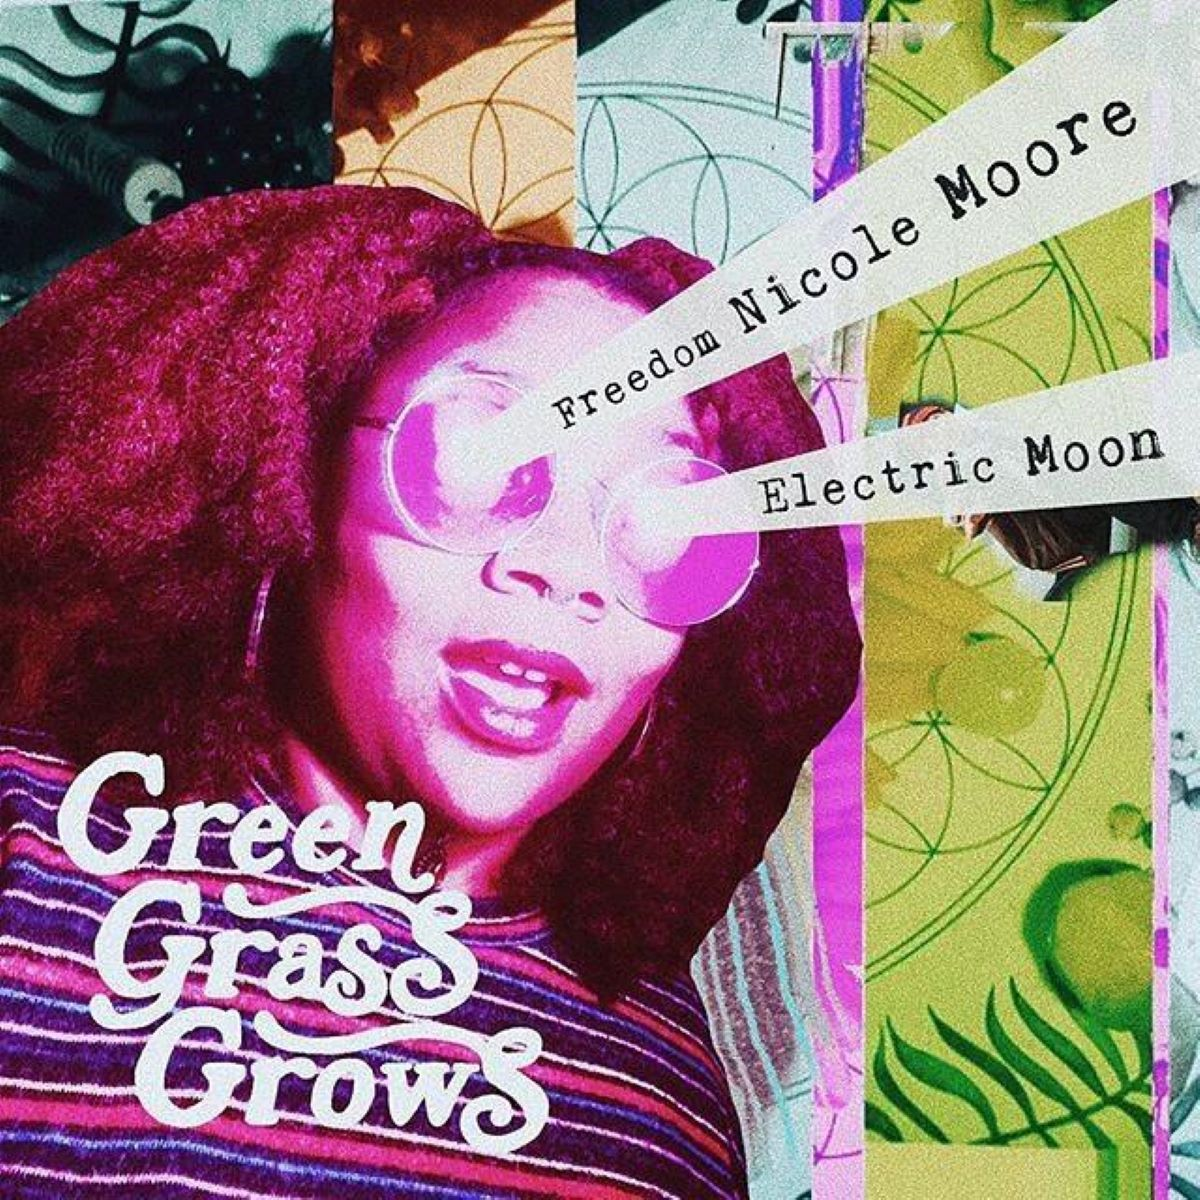 """Green Grass Grows"" is groove-heavy, soulful, chill, and lovely. If you love artists like Erykah Badu or Jill Scott, you are going to want to listen to this magic music. / Image courtesy of the artist // Published: 3.30.20"